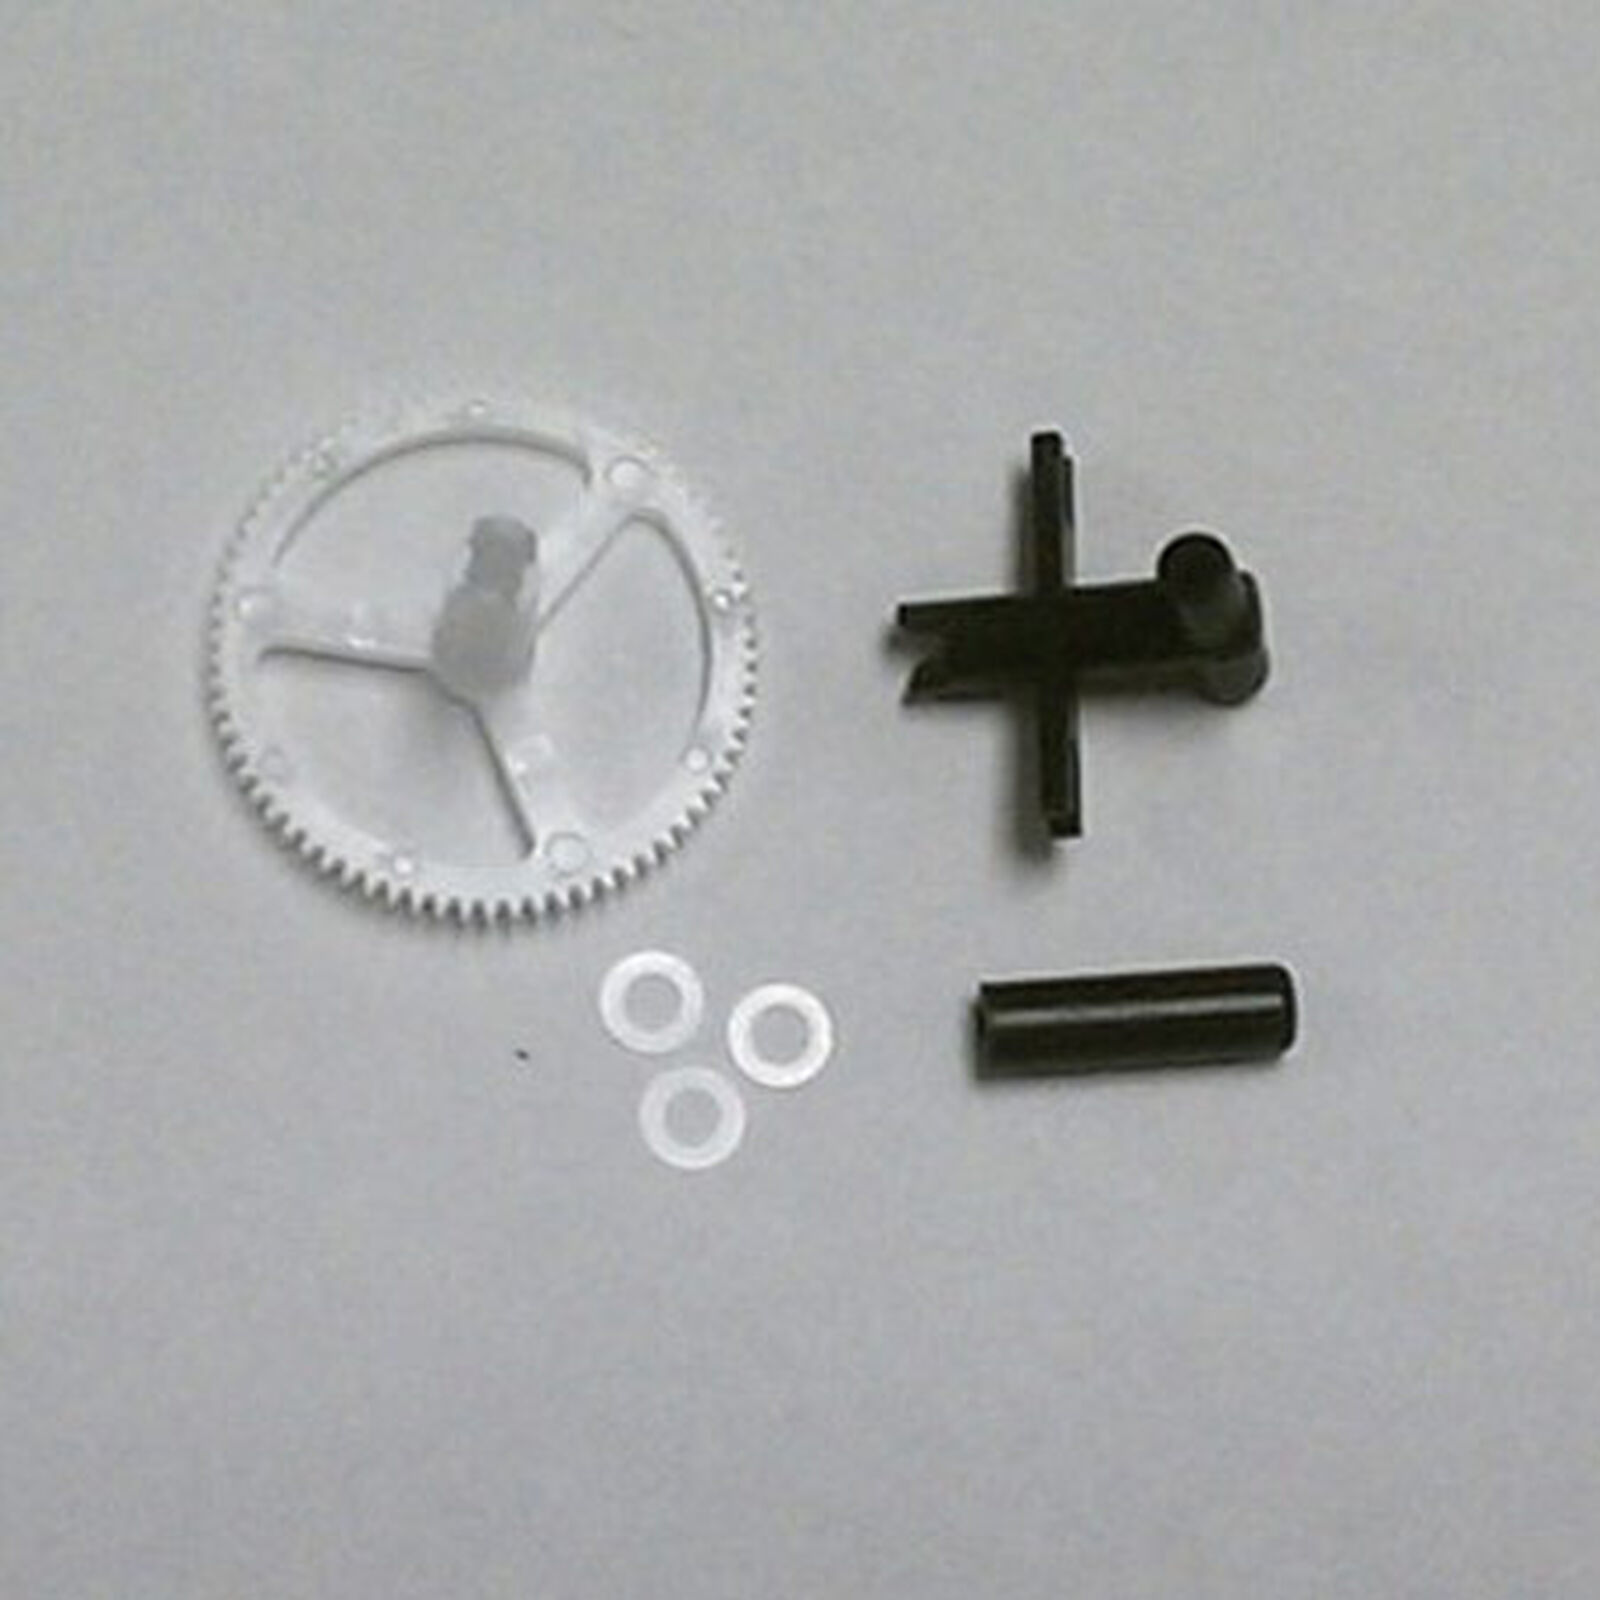 Lower Rotor Head, Outer Shaft/Gear, Washers (3)